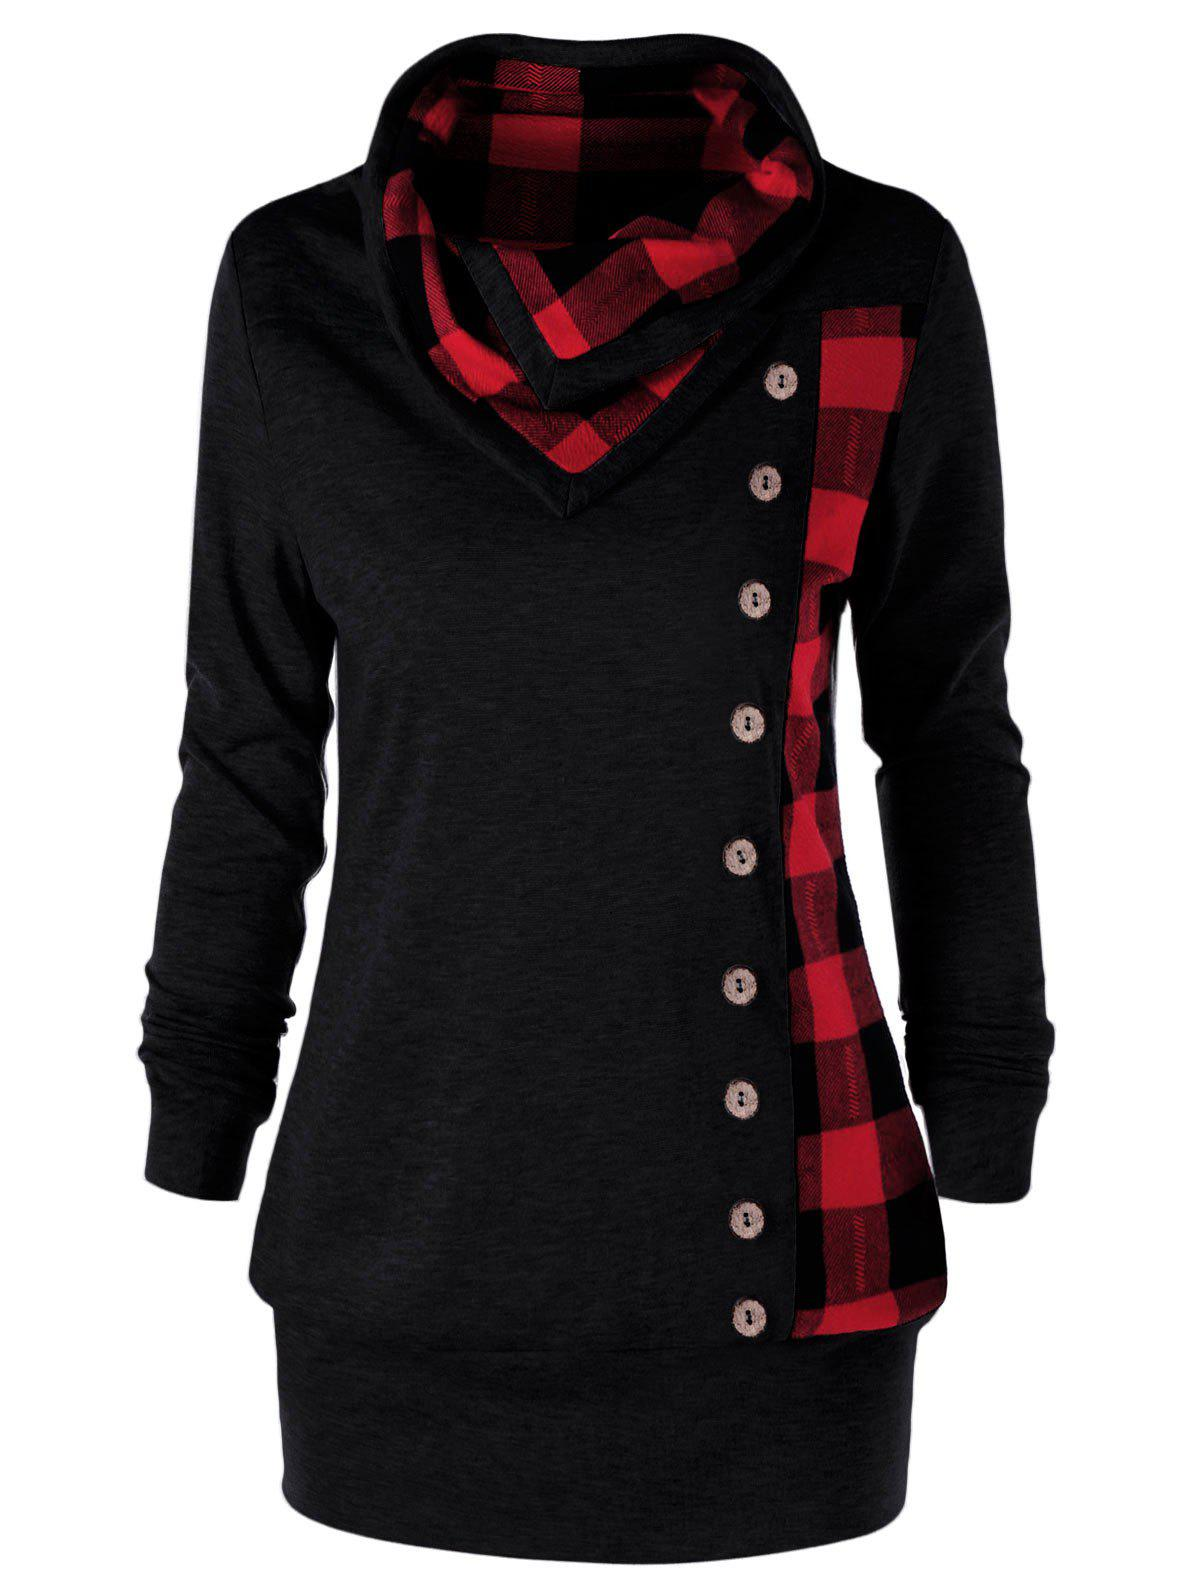 Plus Size Plaid Cowl Neck Tunic Sweatshirt - RED/BLACK XL